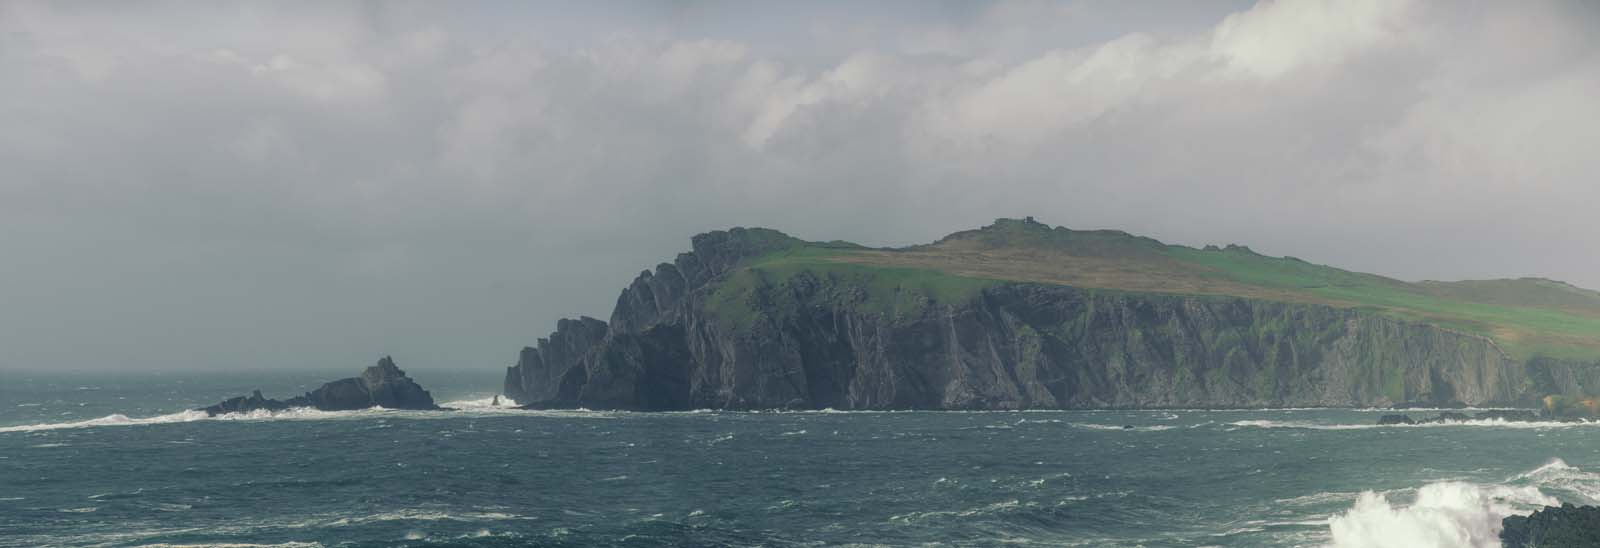 Star-Wars-Filming-Location-Ceann-Sibeal-Dingle-Ireland